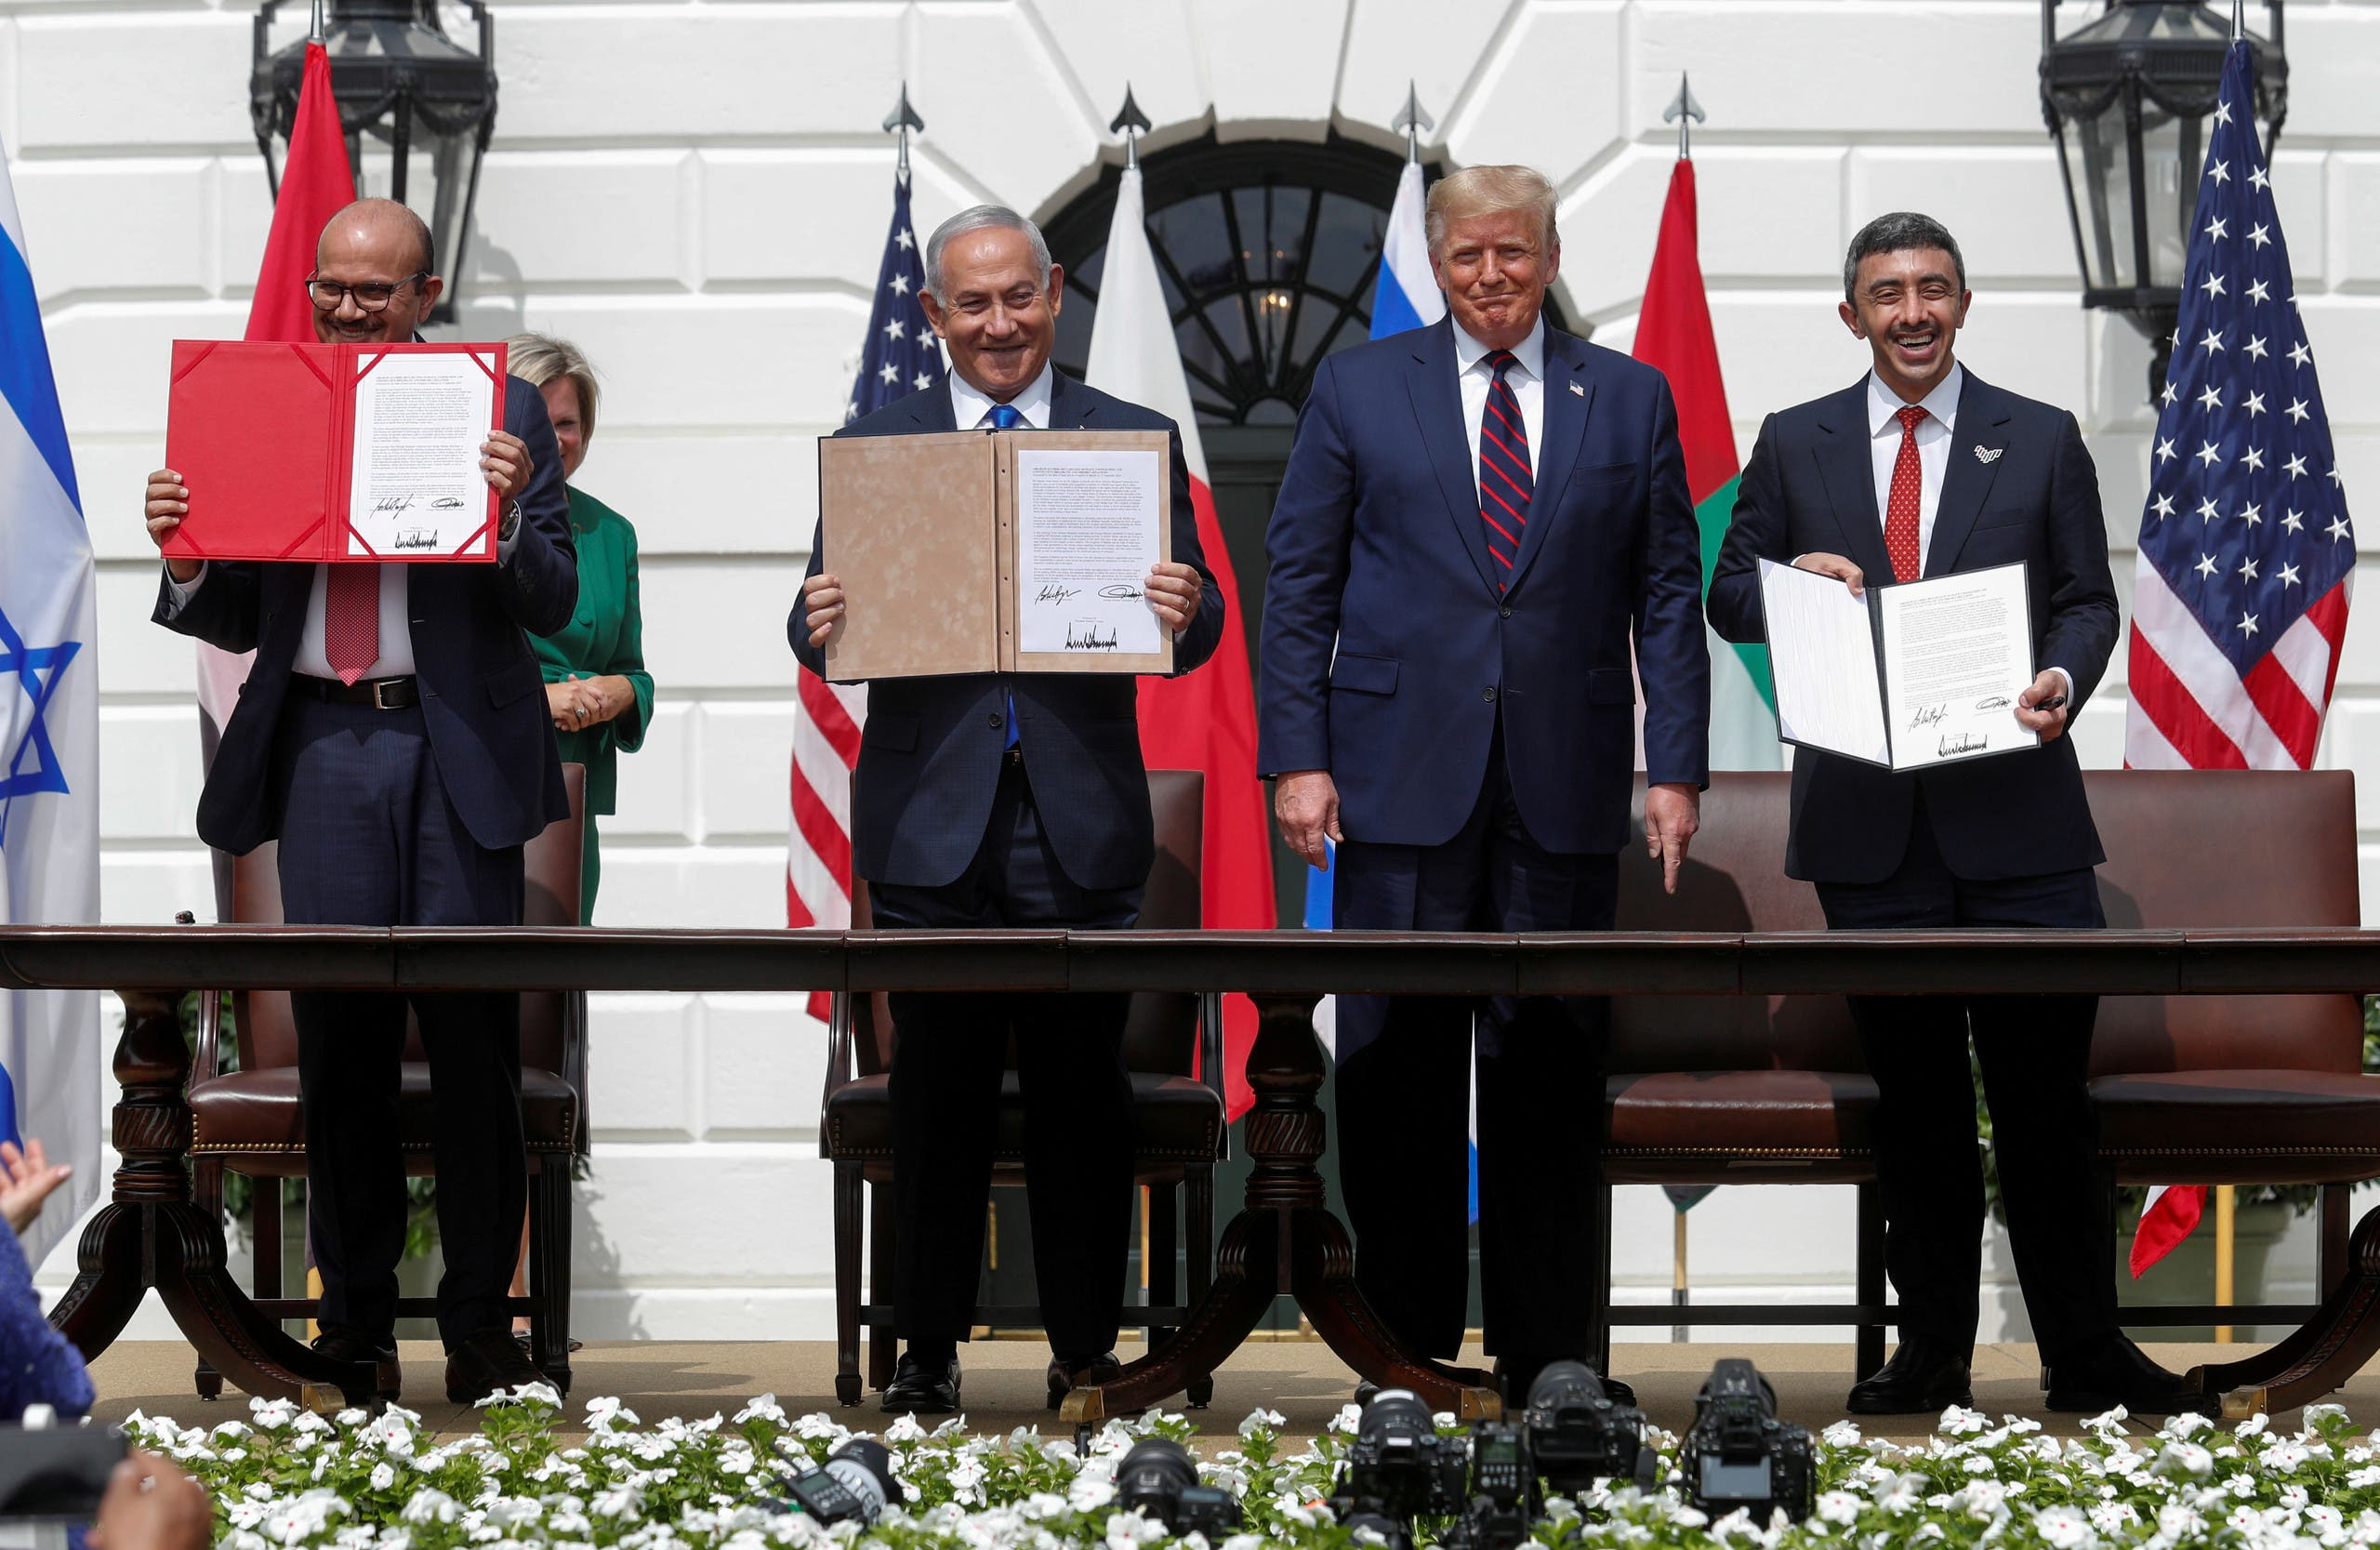 Bahrain's Foreign Minister Abdullatif Al Zayani, Israel's Prime Minister Benjamin Netanyahu and United Arab Emirates (UAE) Foreign Minister Abdullah bin Zayed display their copies of signed agreements while U.S. President Donald Trump looks on as they participate in the signing ceremony of the Abraham Accords. (File photo: Reuters)